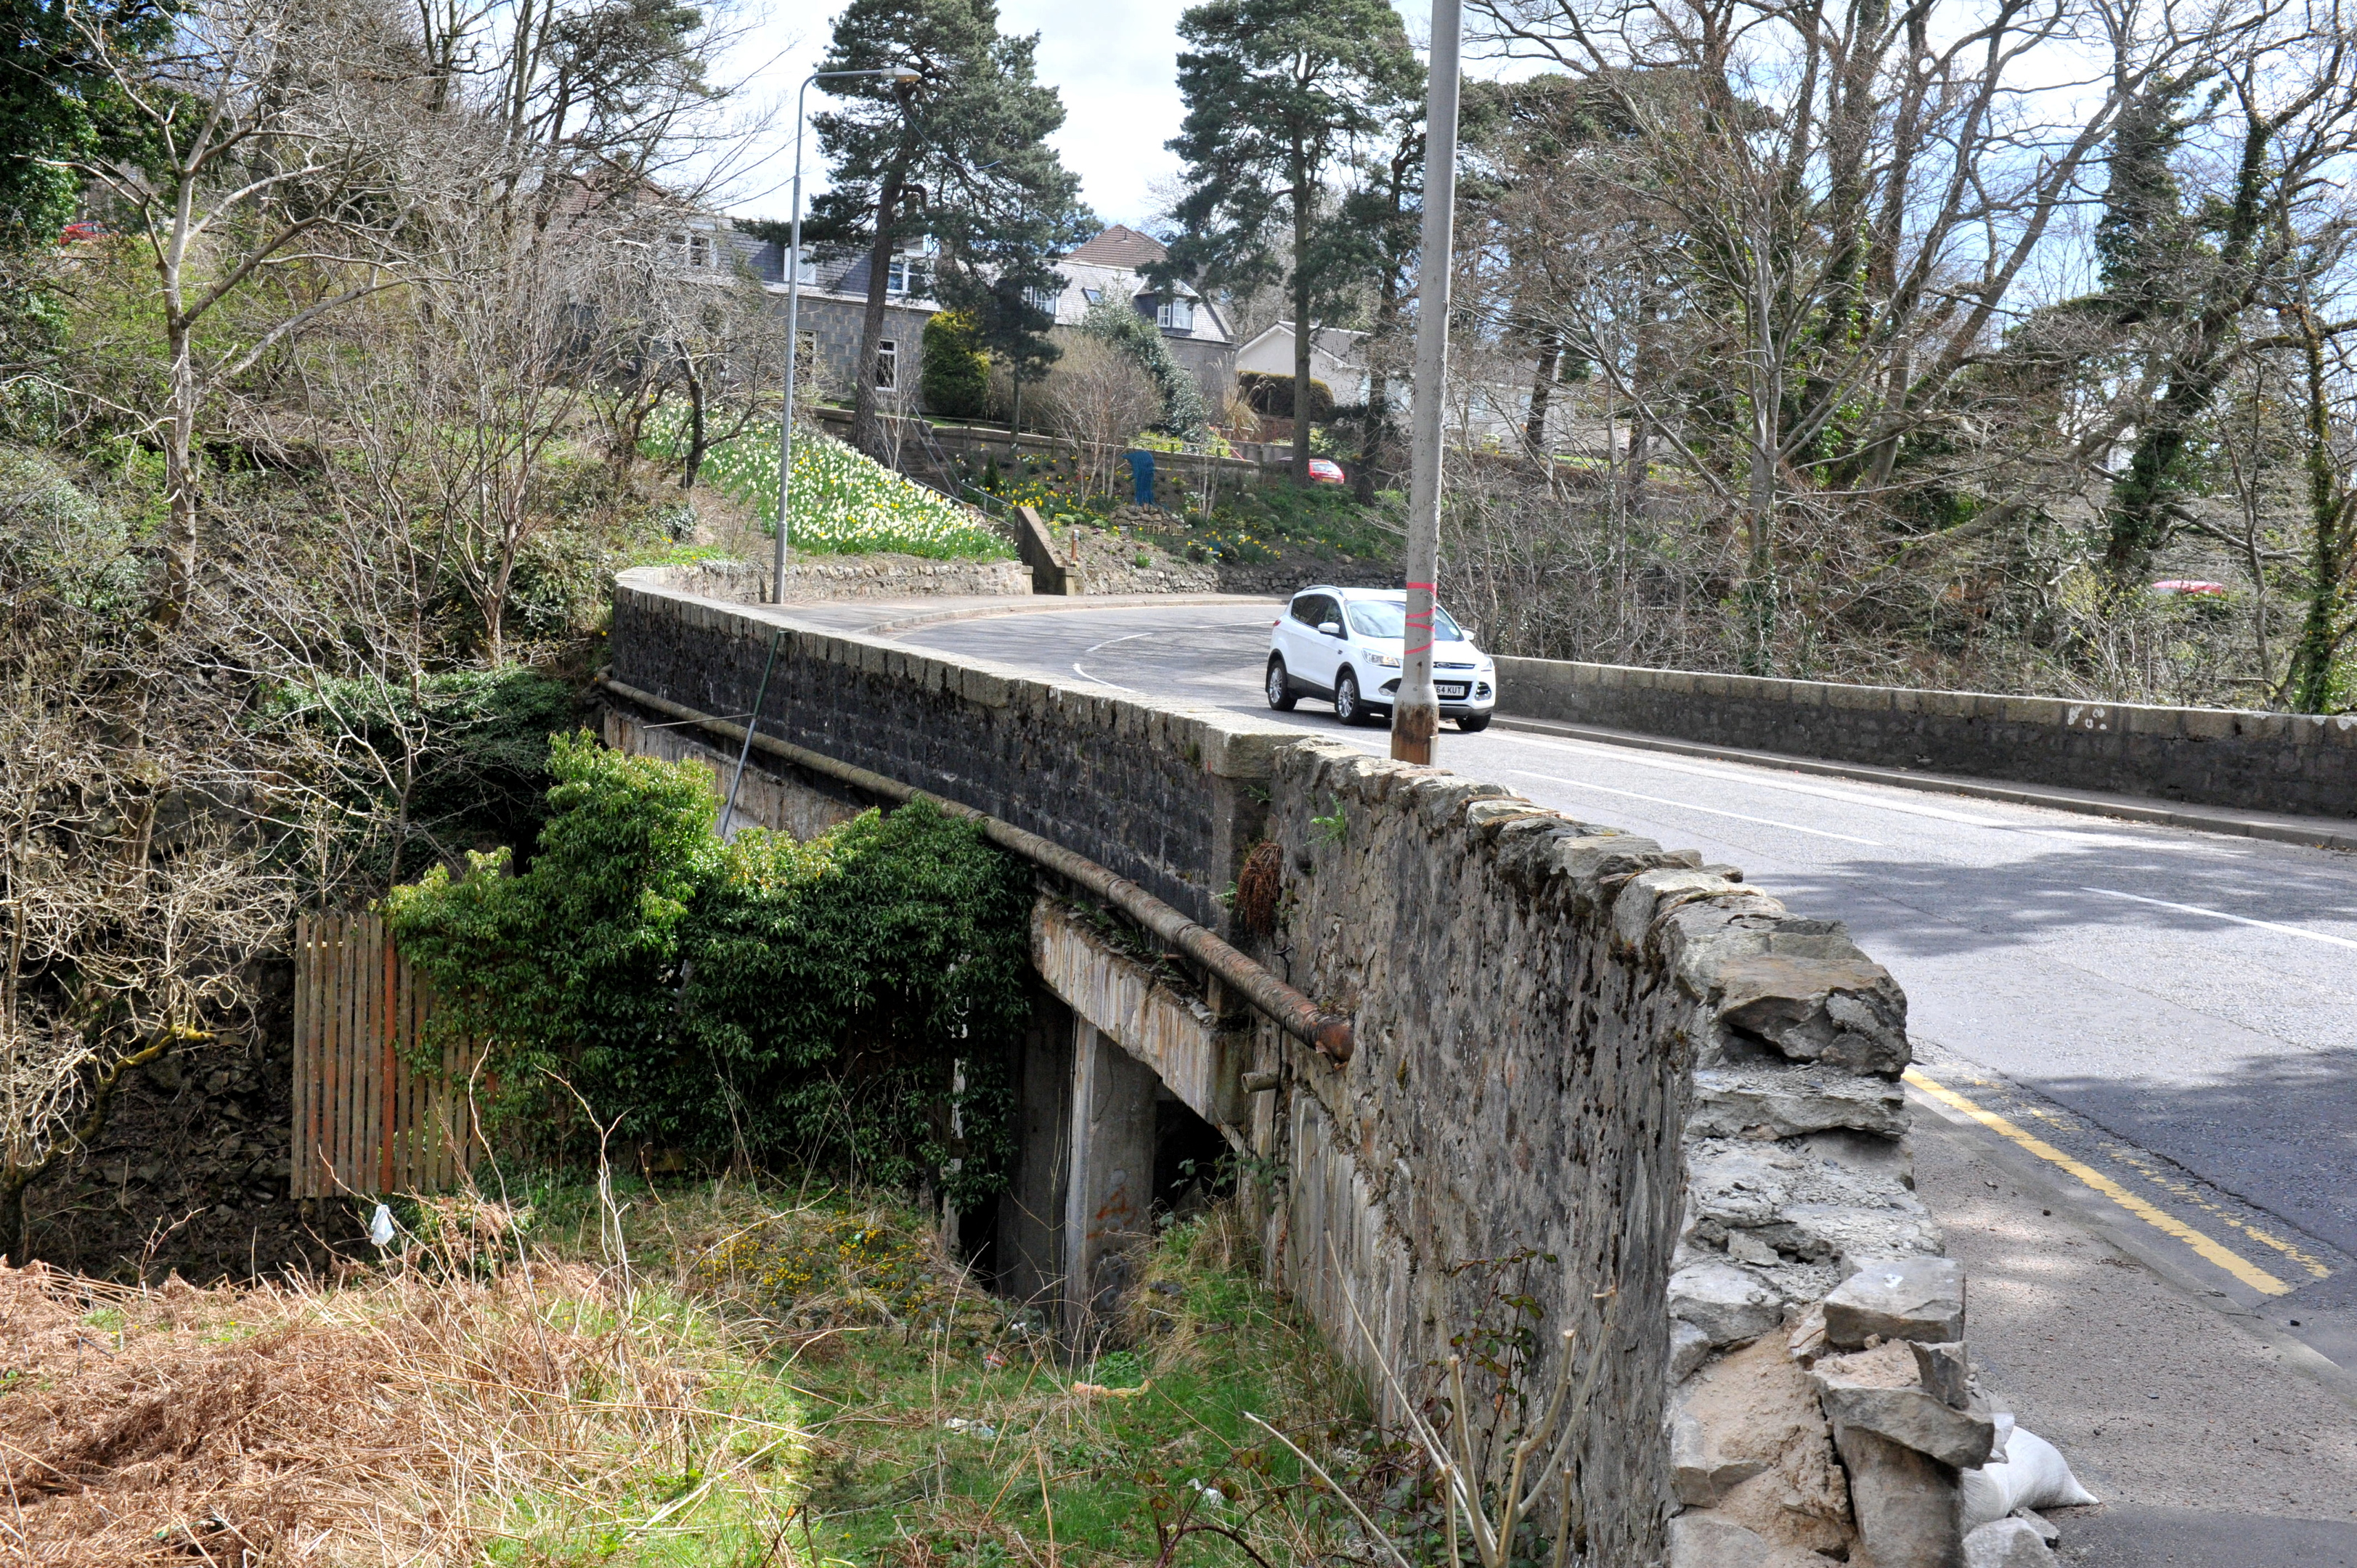 Rob Roy Bridge is to shut for essential works costing around £530,000.